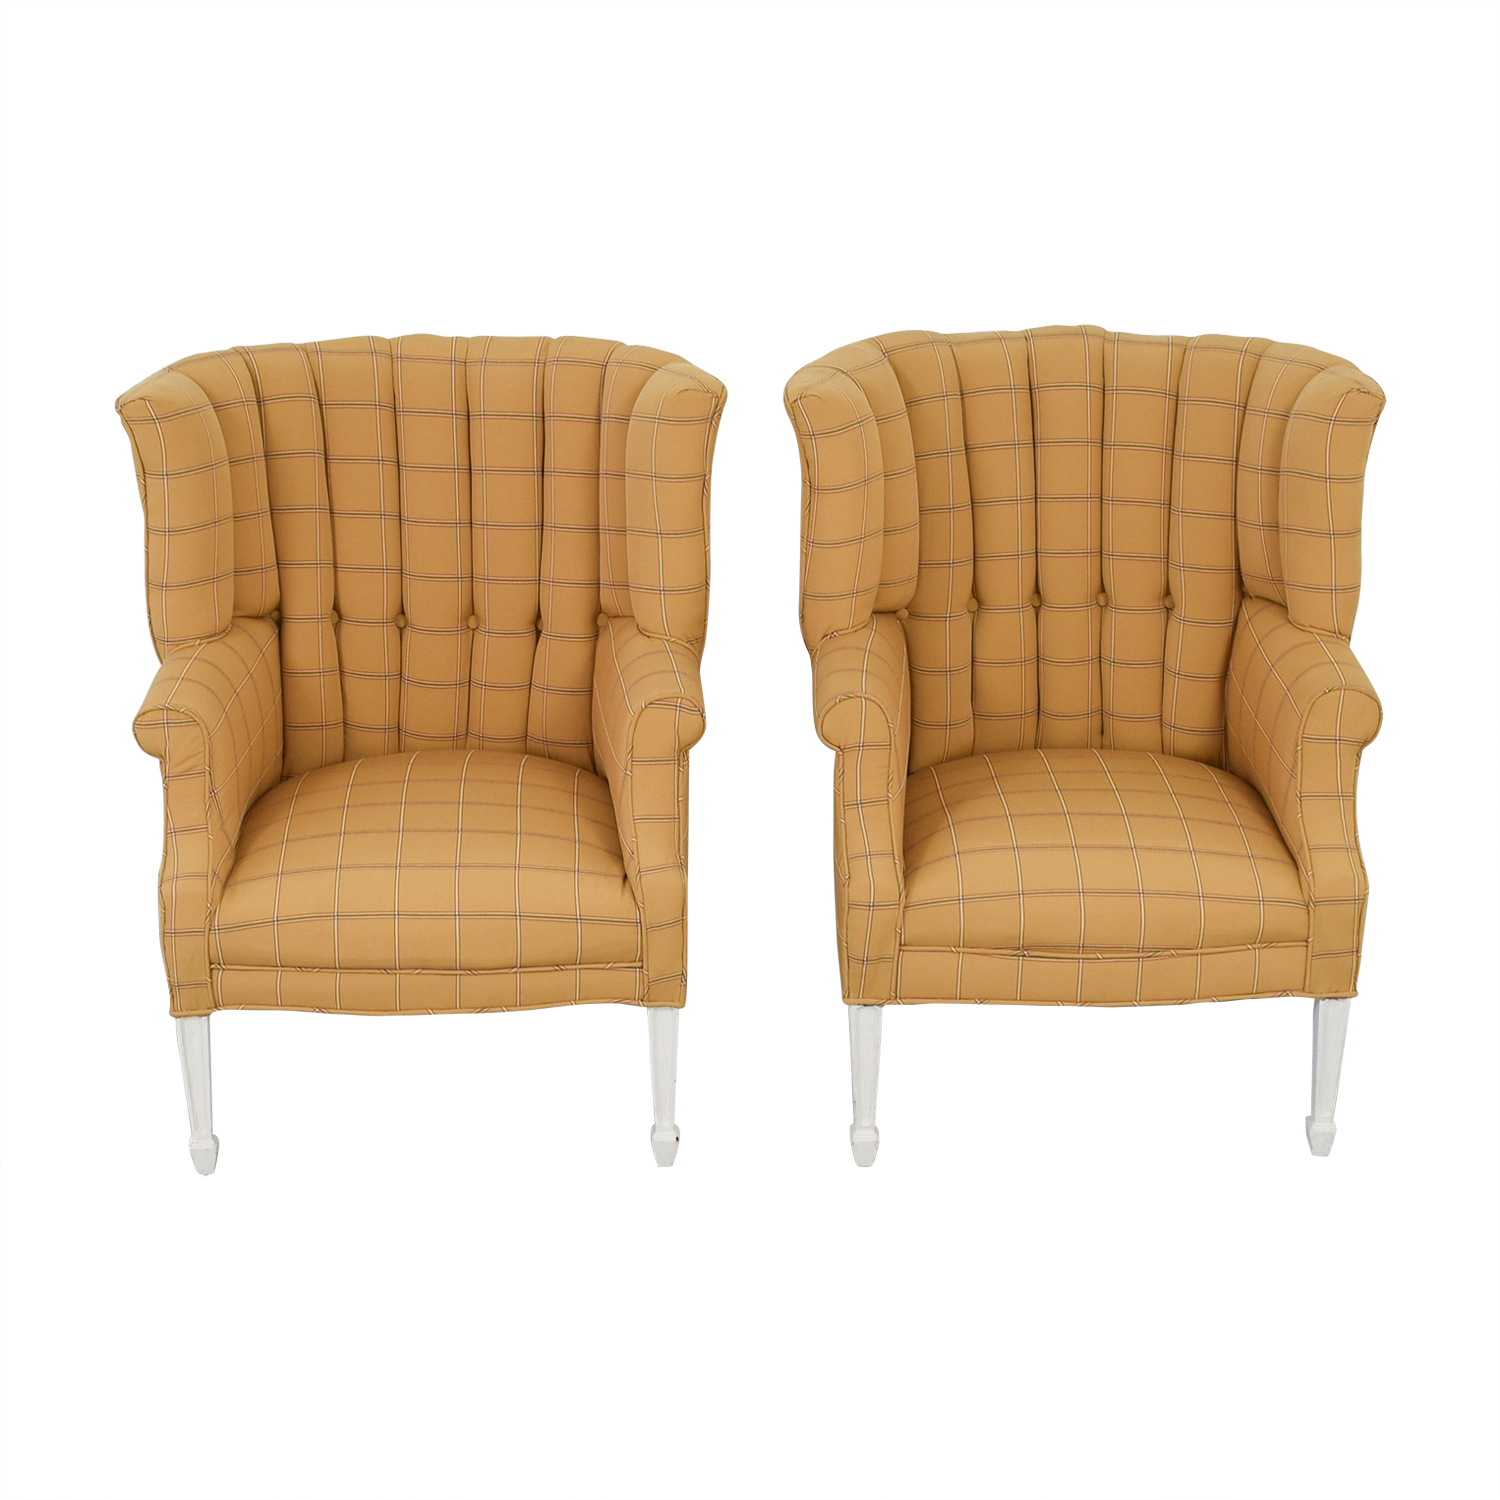 Vintage Yellow and Beige Plaid Wing Back Accent Chairs on sale